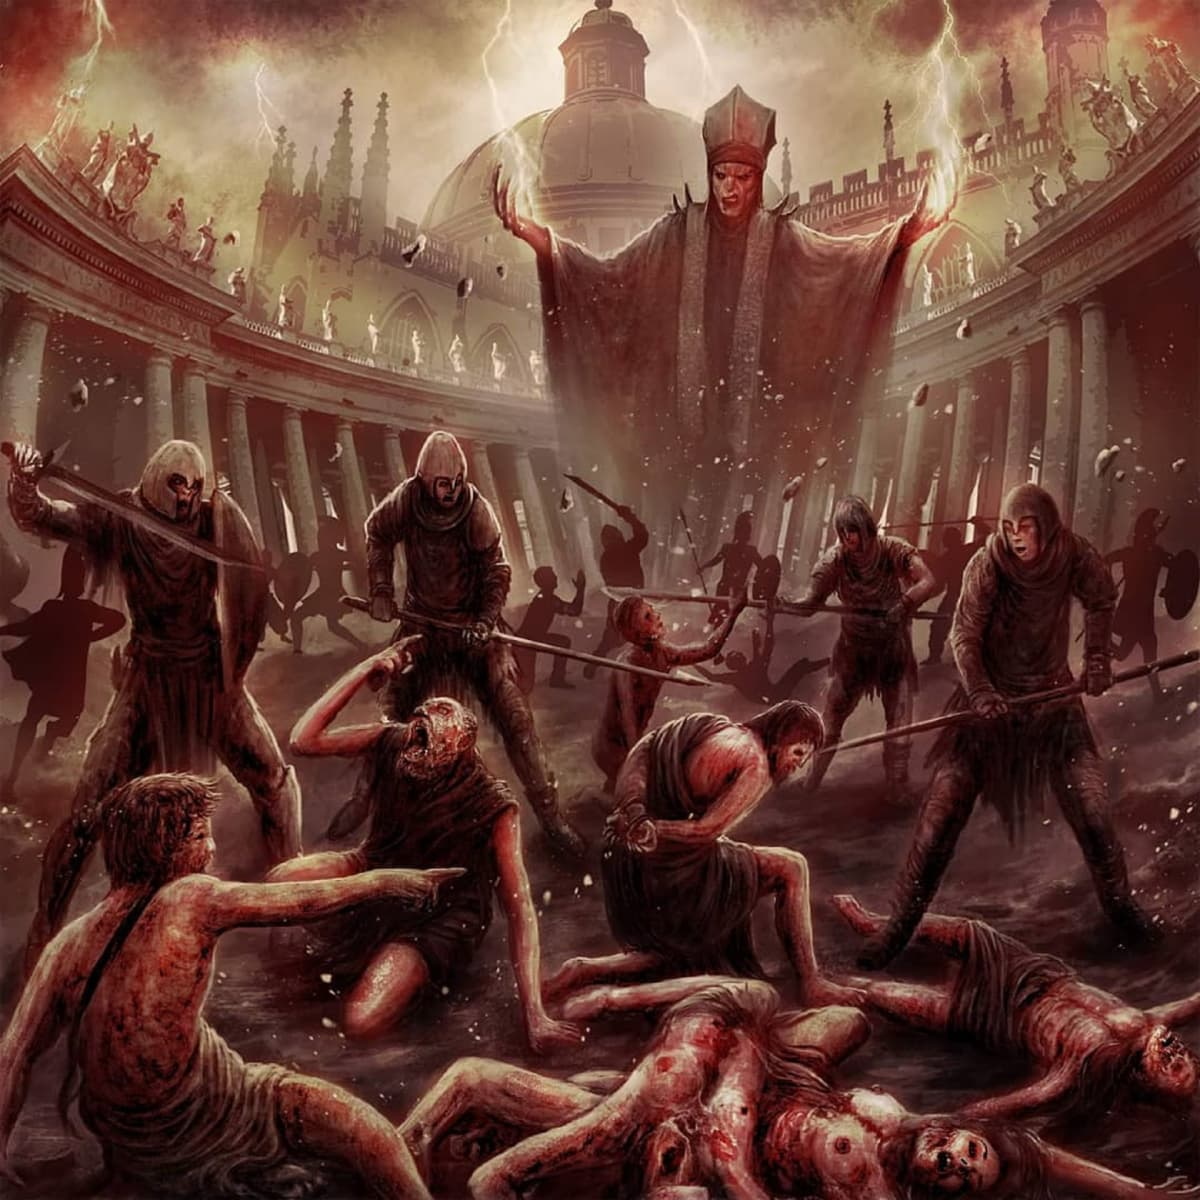 Death metal, Rudi Gorgingsuicide Art Yanto, Damned By The Pope